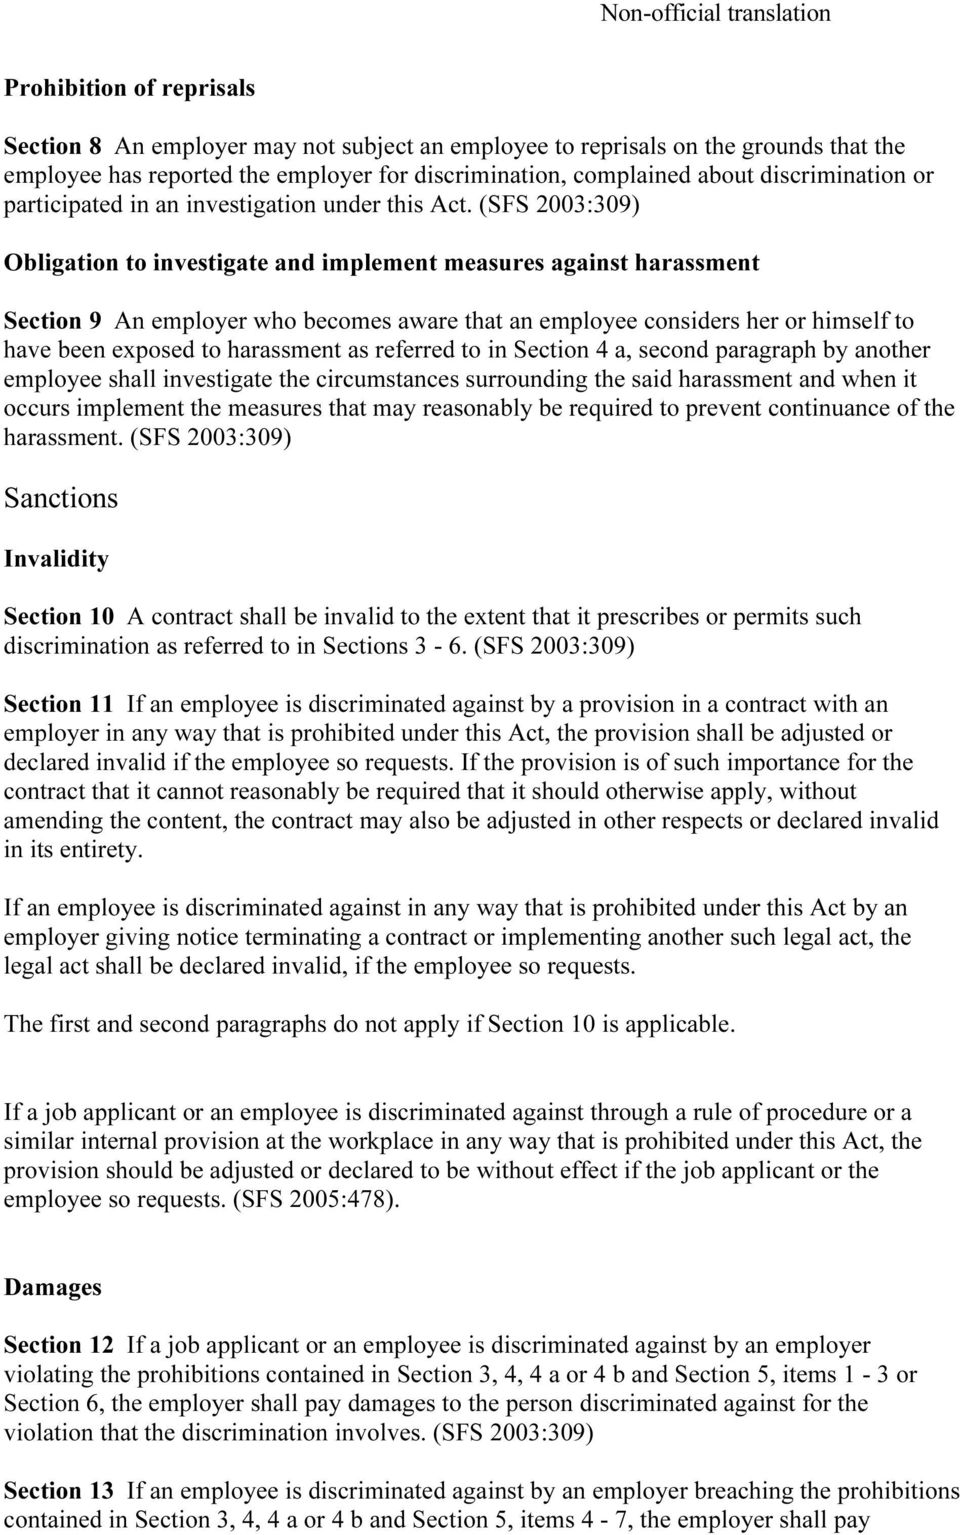 (SFS 2003:309) Obligation to investigate and implement measures against harassment Section 9 An employer who becomes aware that an employee considers her or himself to have been exposed to harassment